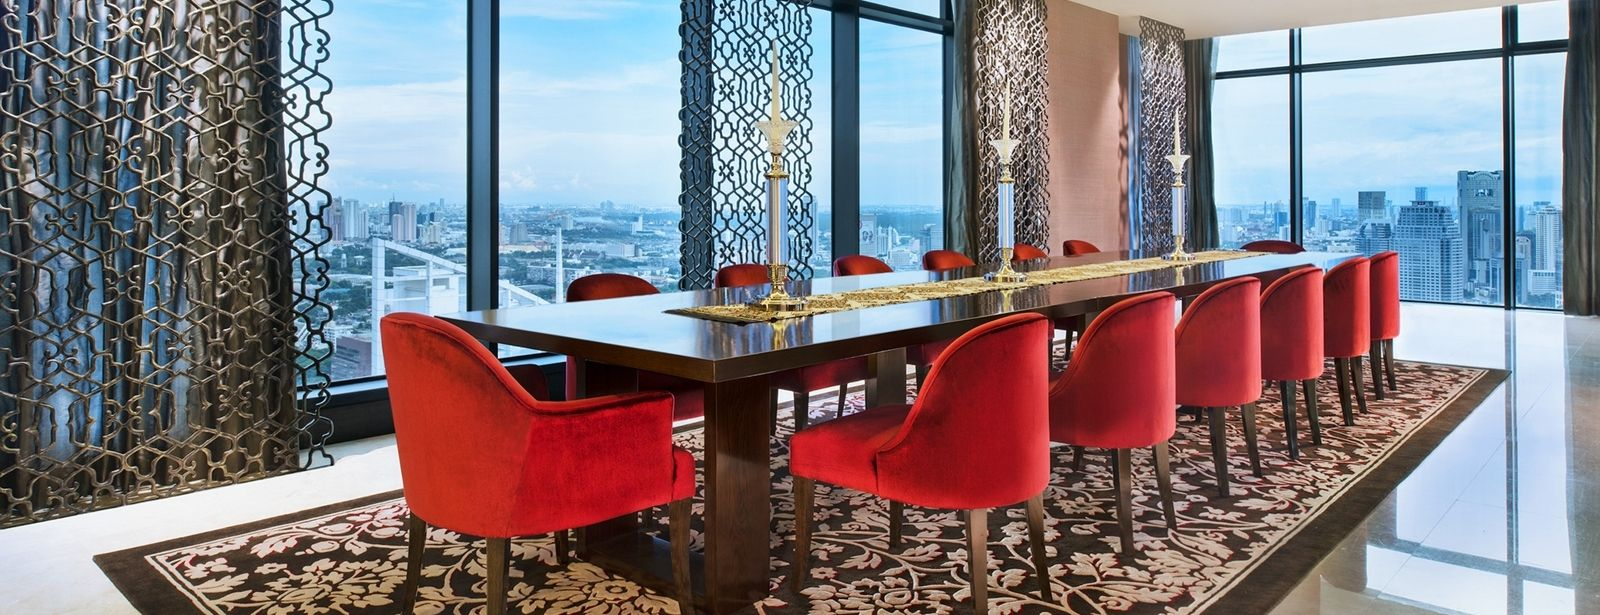 The Owner's Penthouse - Private Dining Room